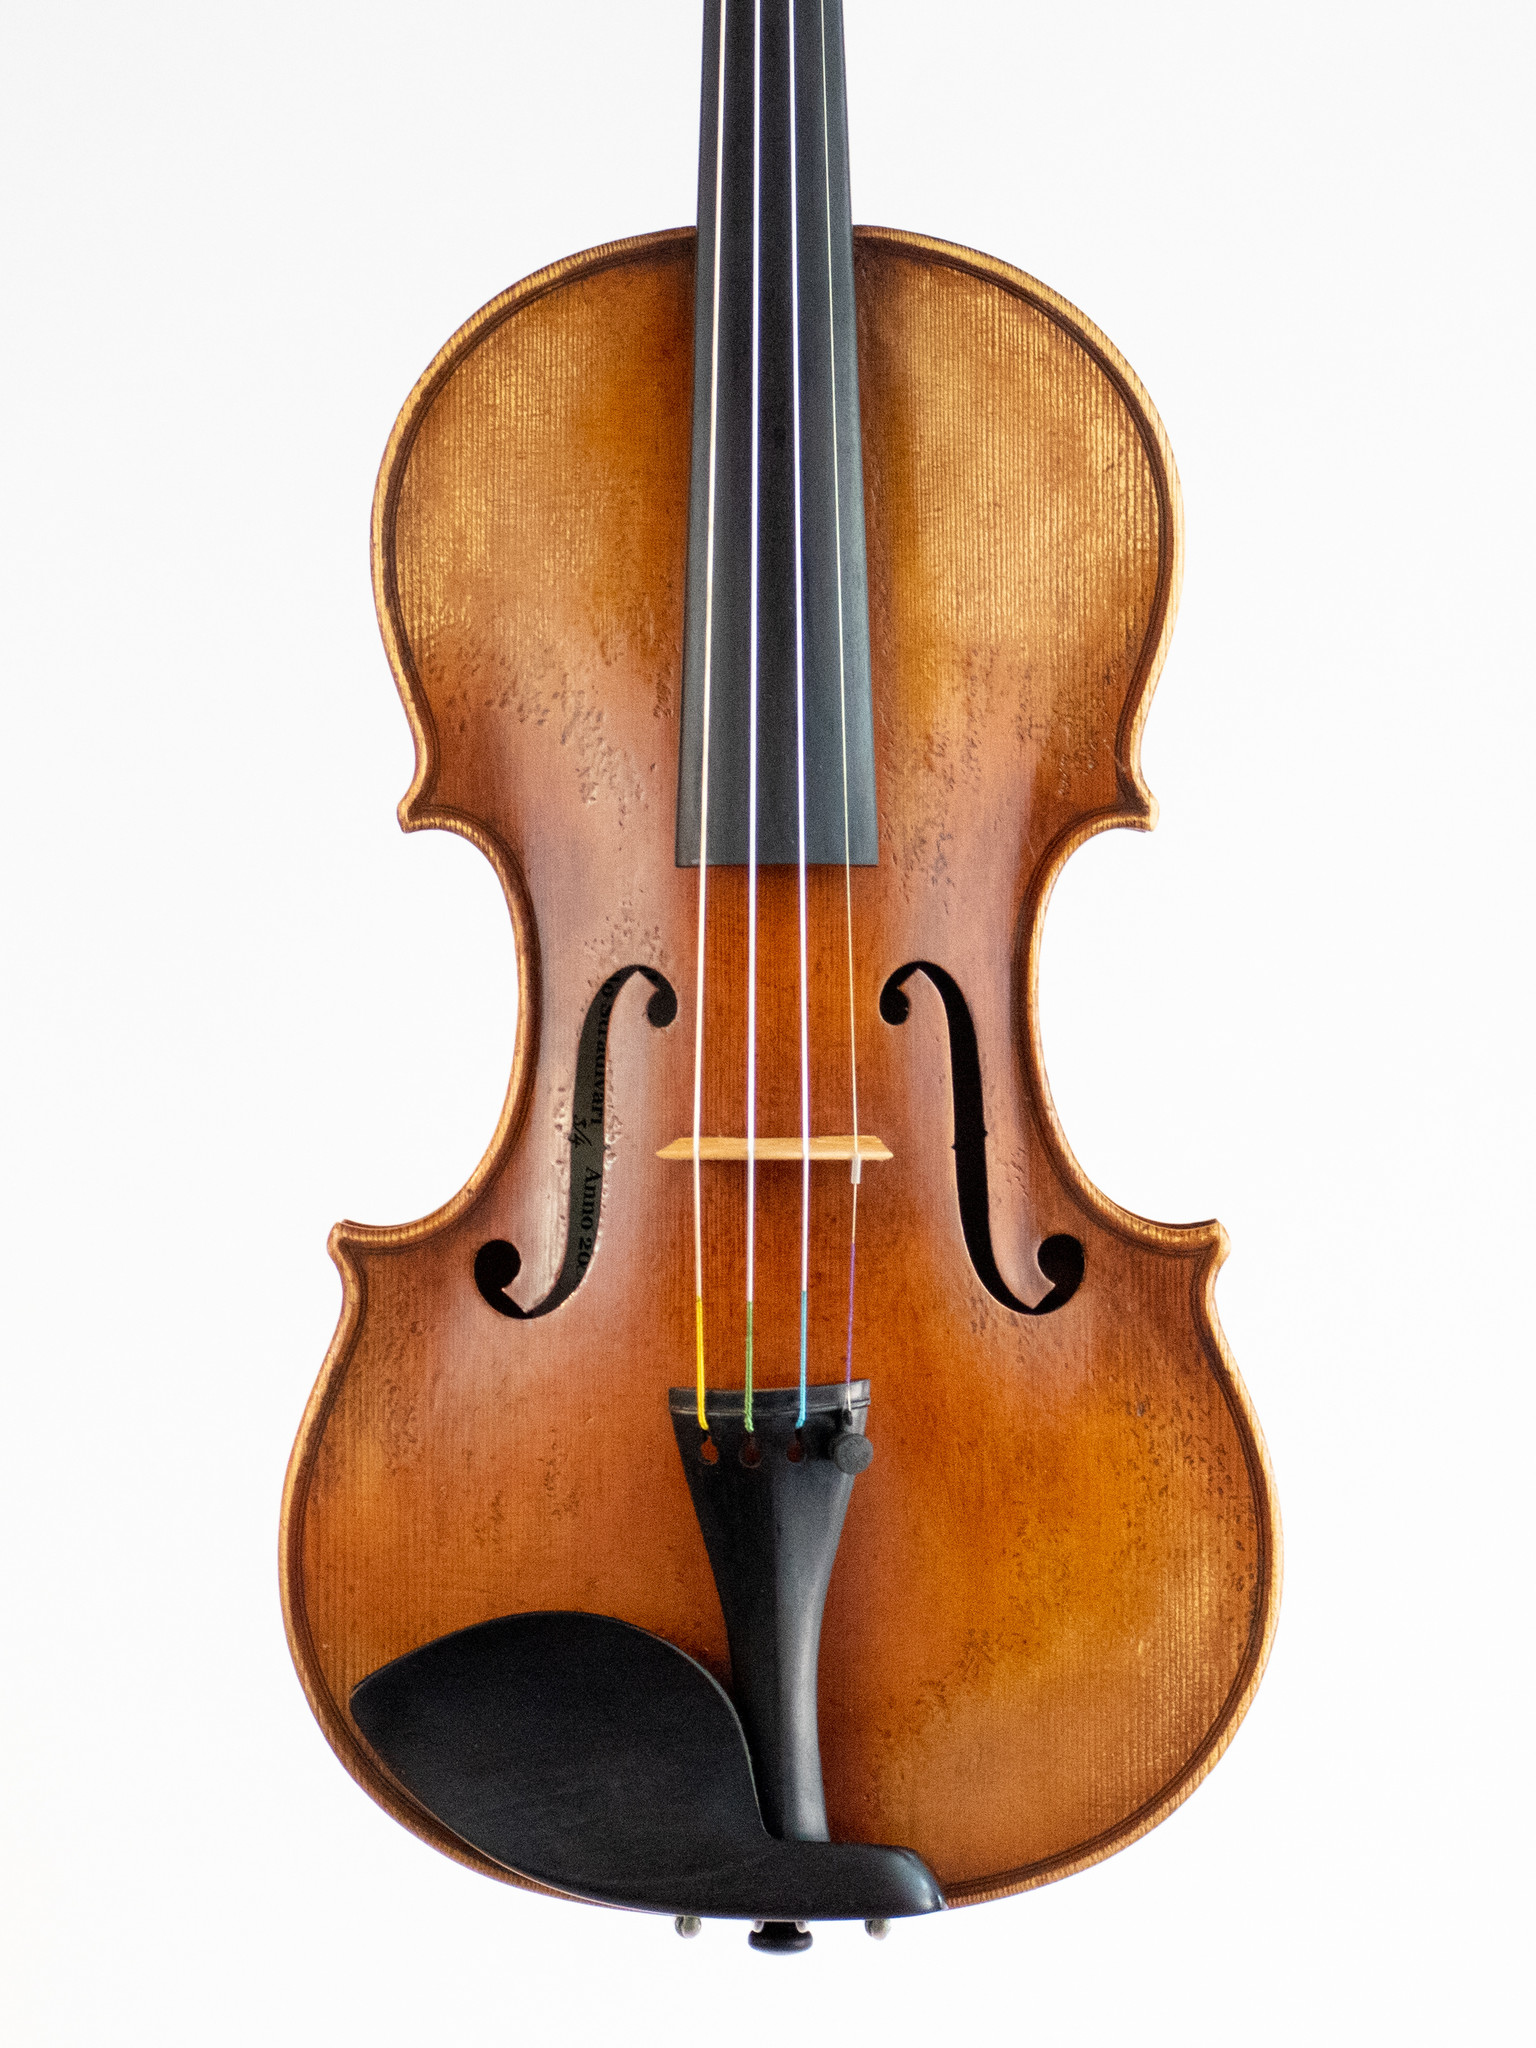 Salvatore Callegari 3/4 violin, 2006, Strad model, European wood